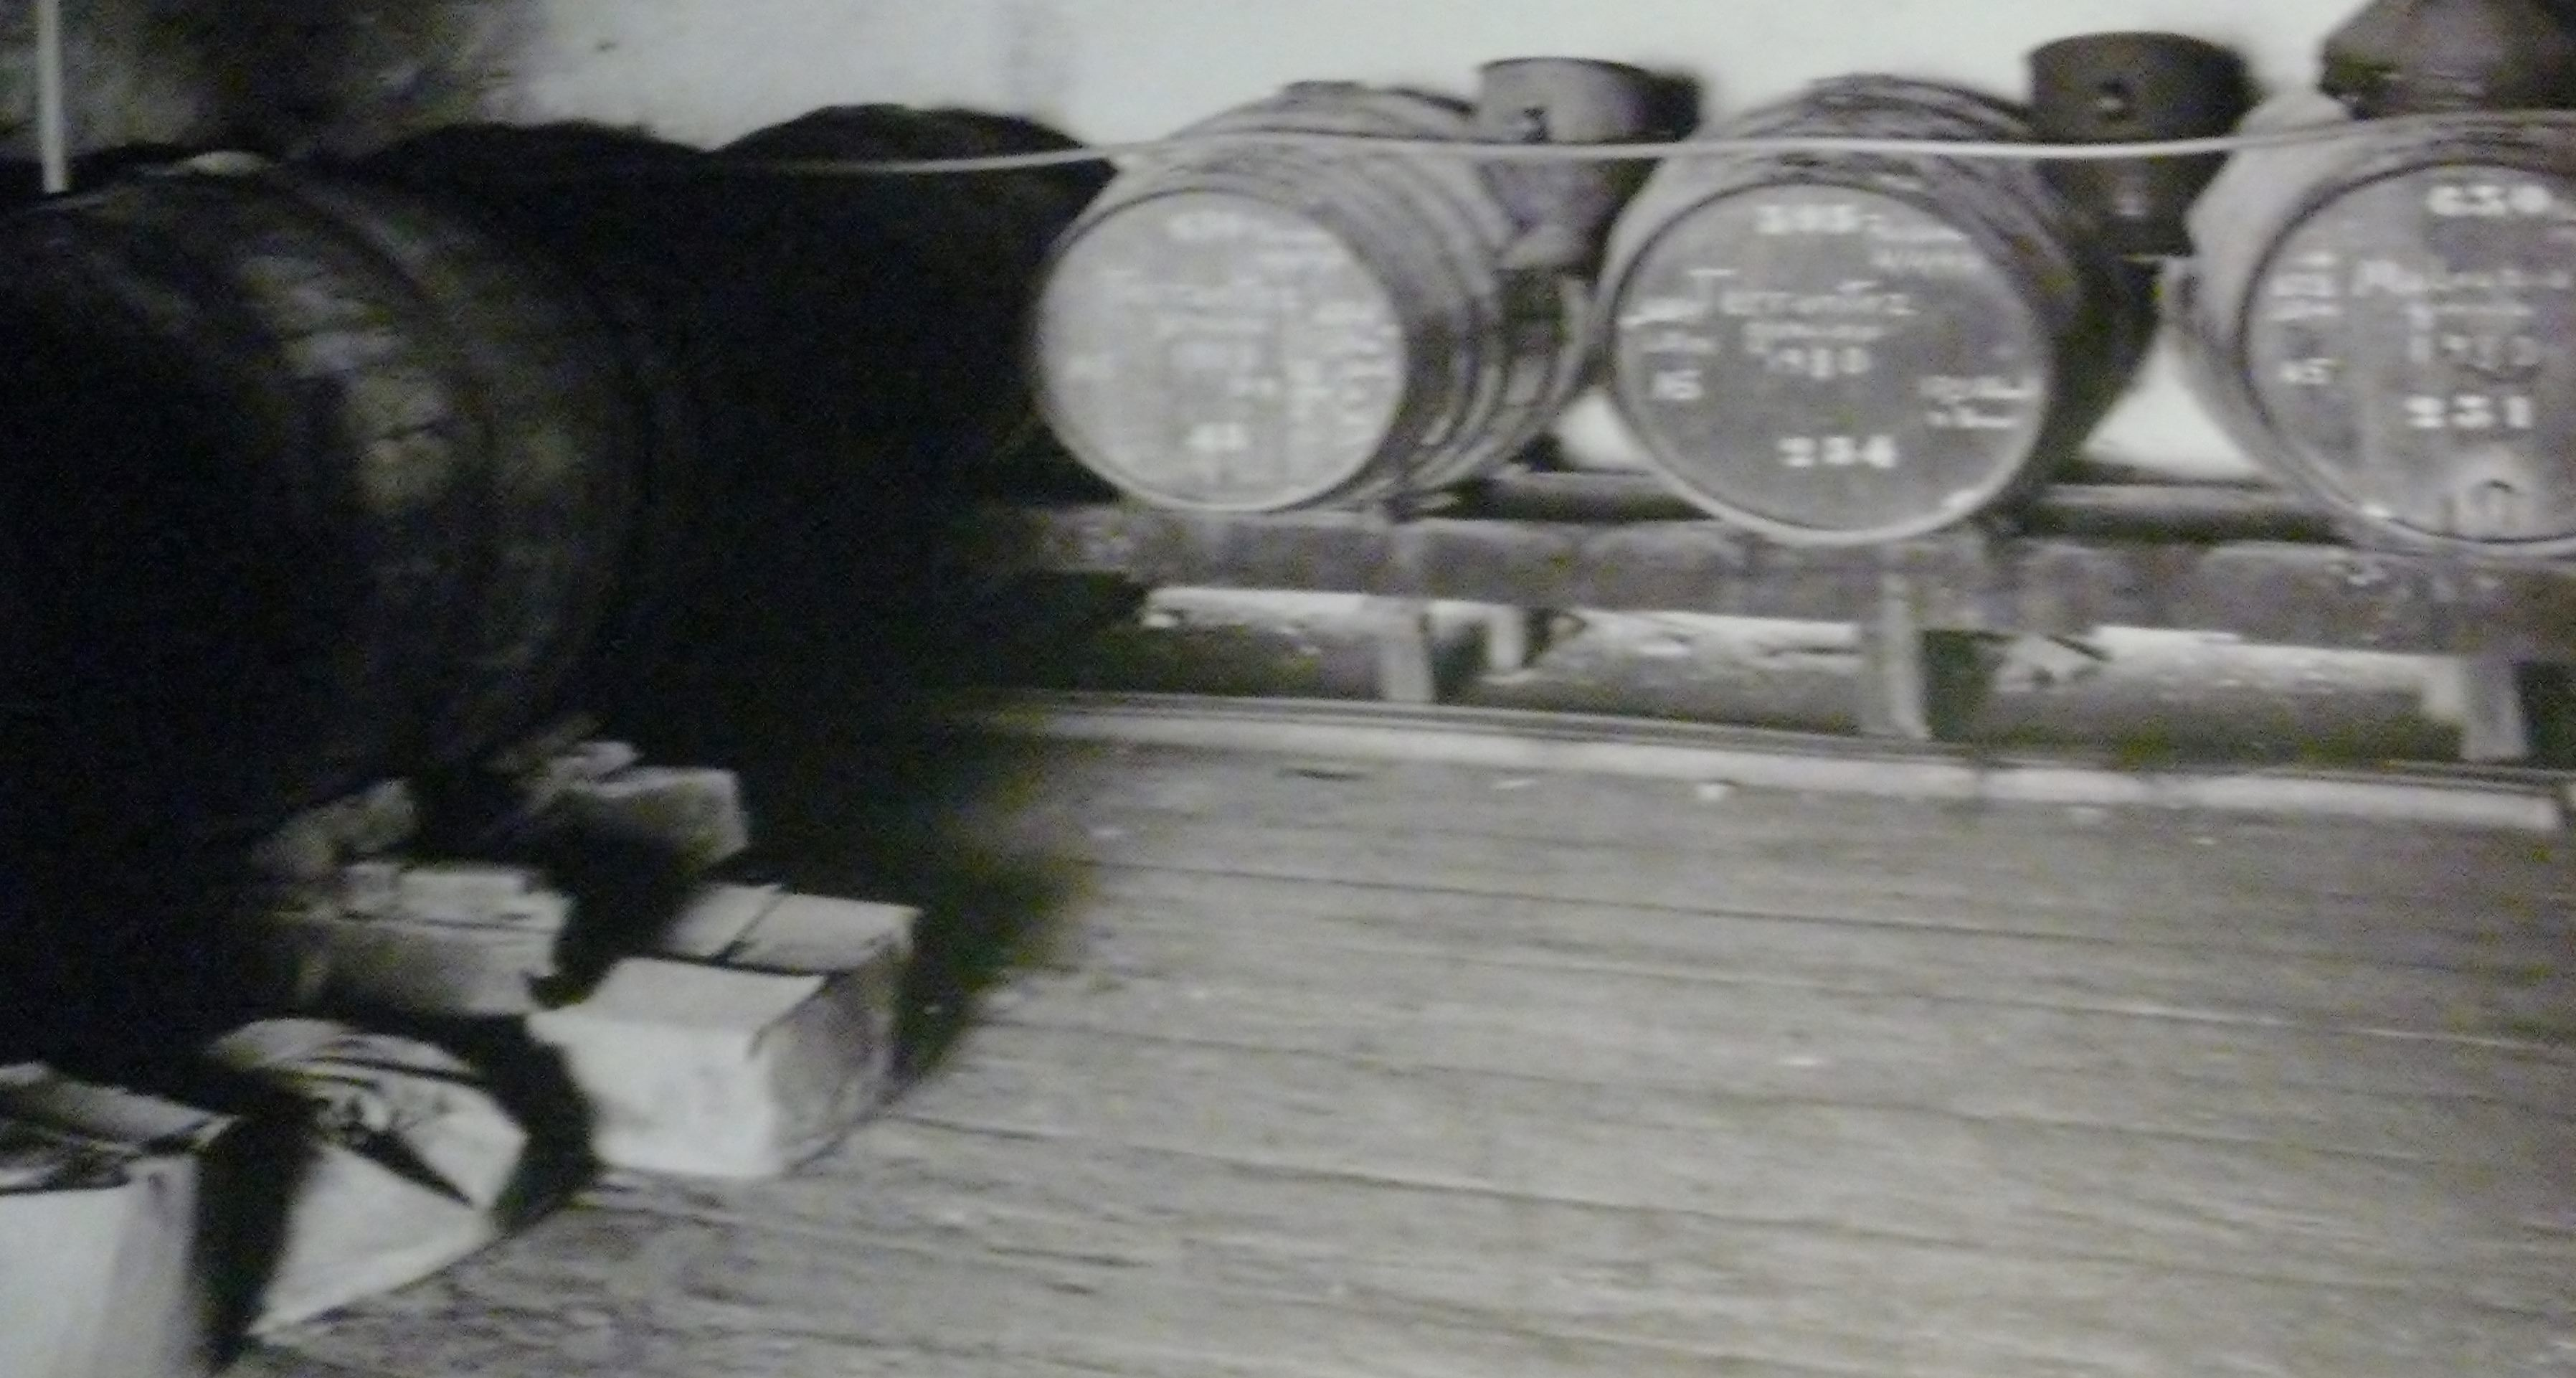 Old barrels of Madeira wine